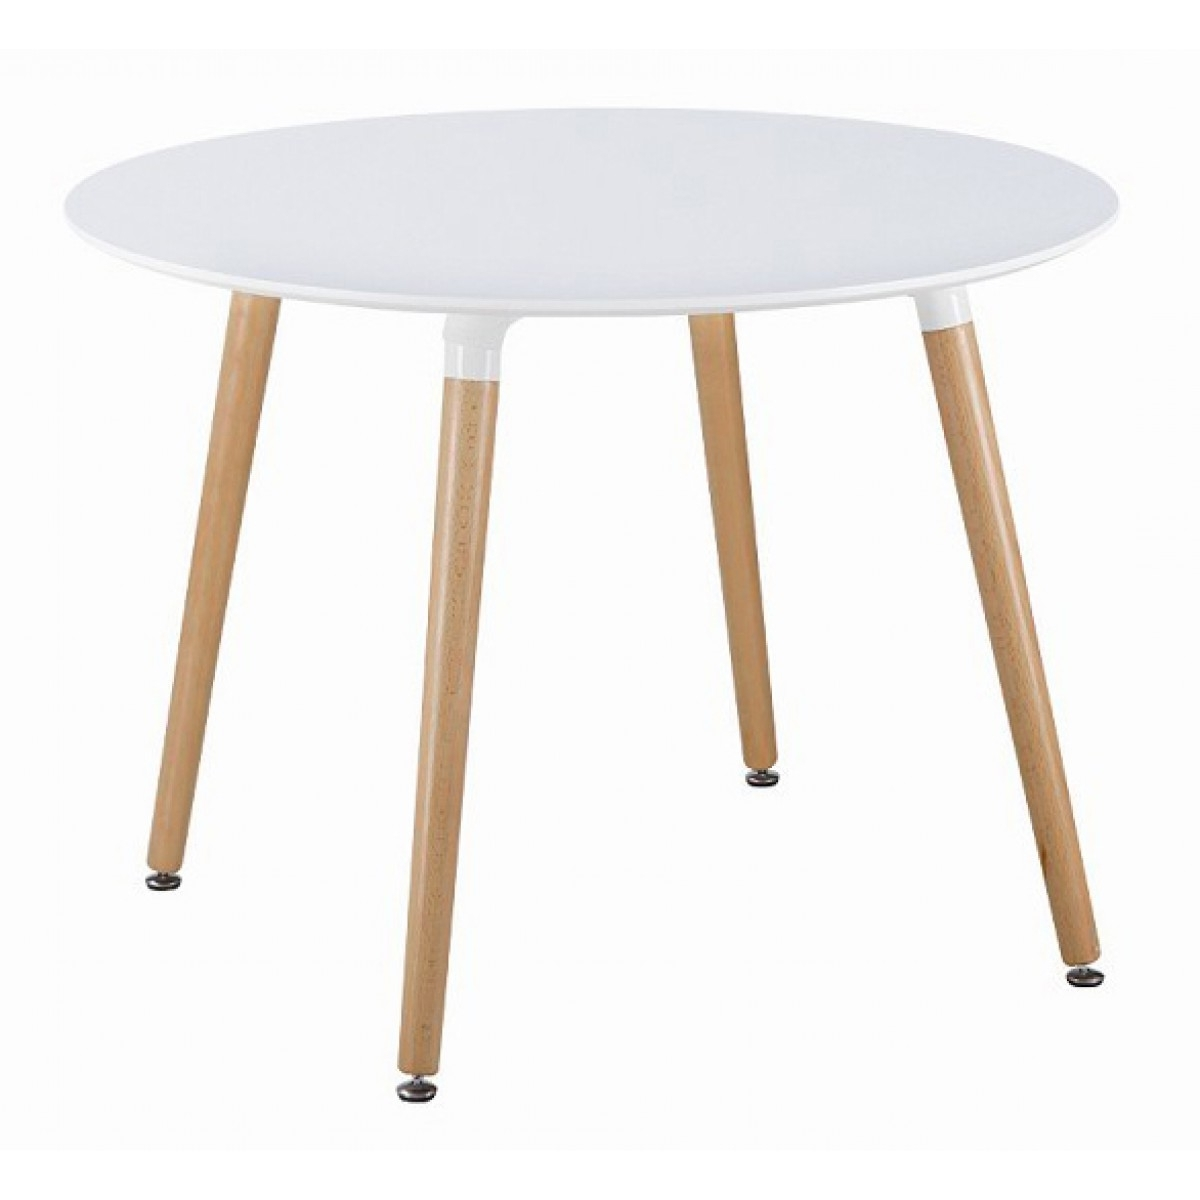 Famous White Circle Dining Tables Throughout Eames Style Dsw White Round Dining Table (View 7 of 25)